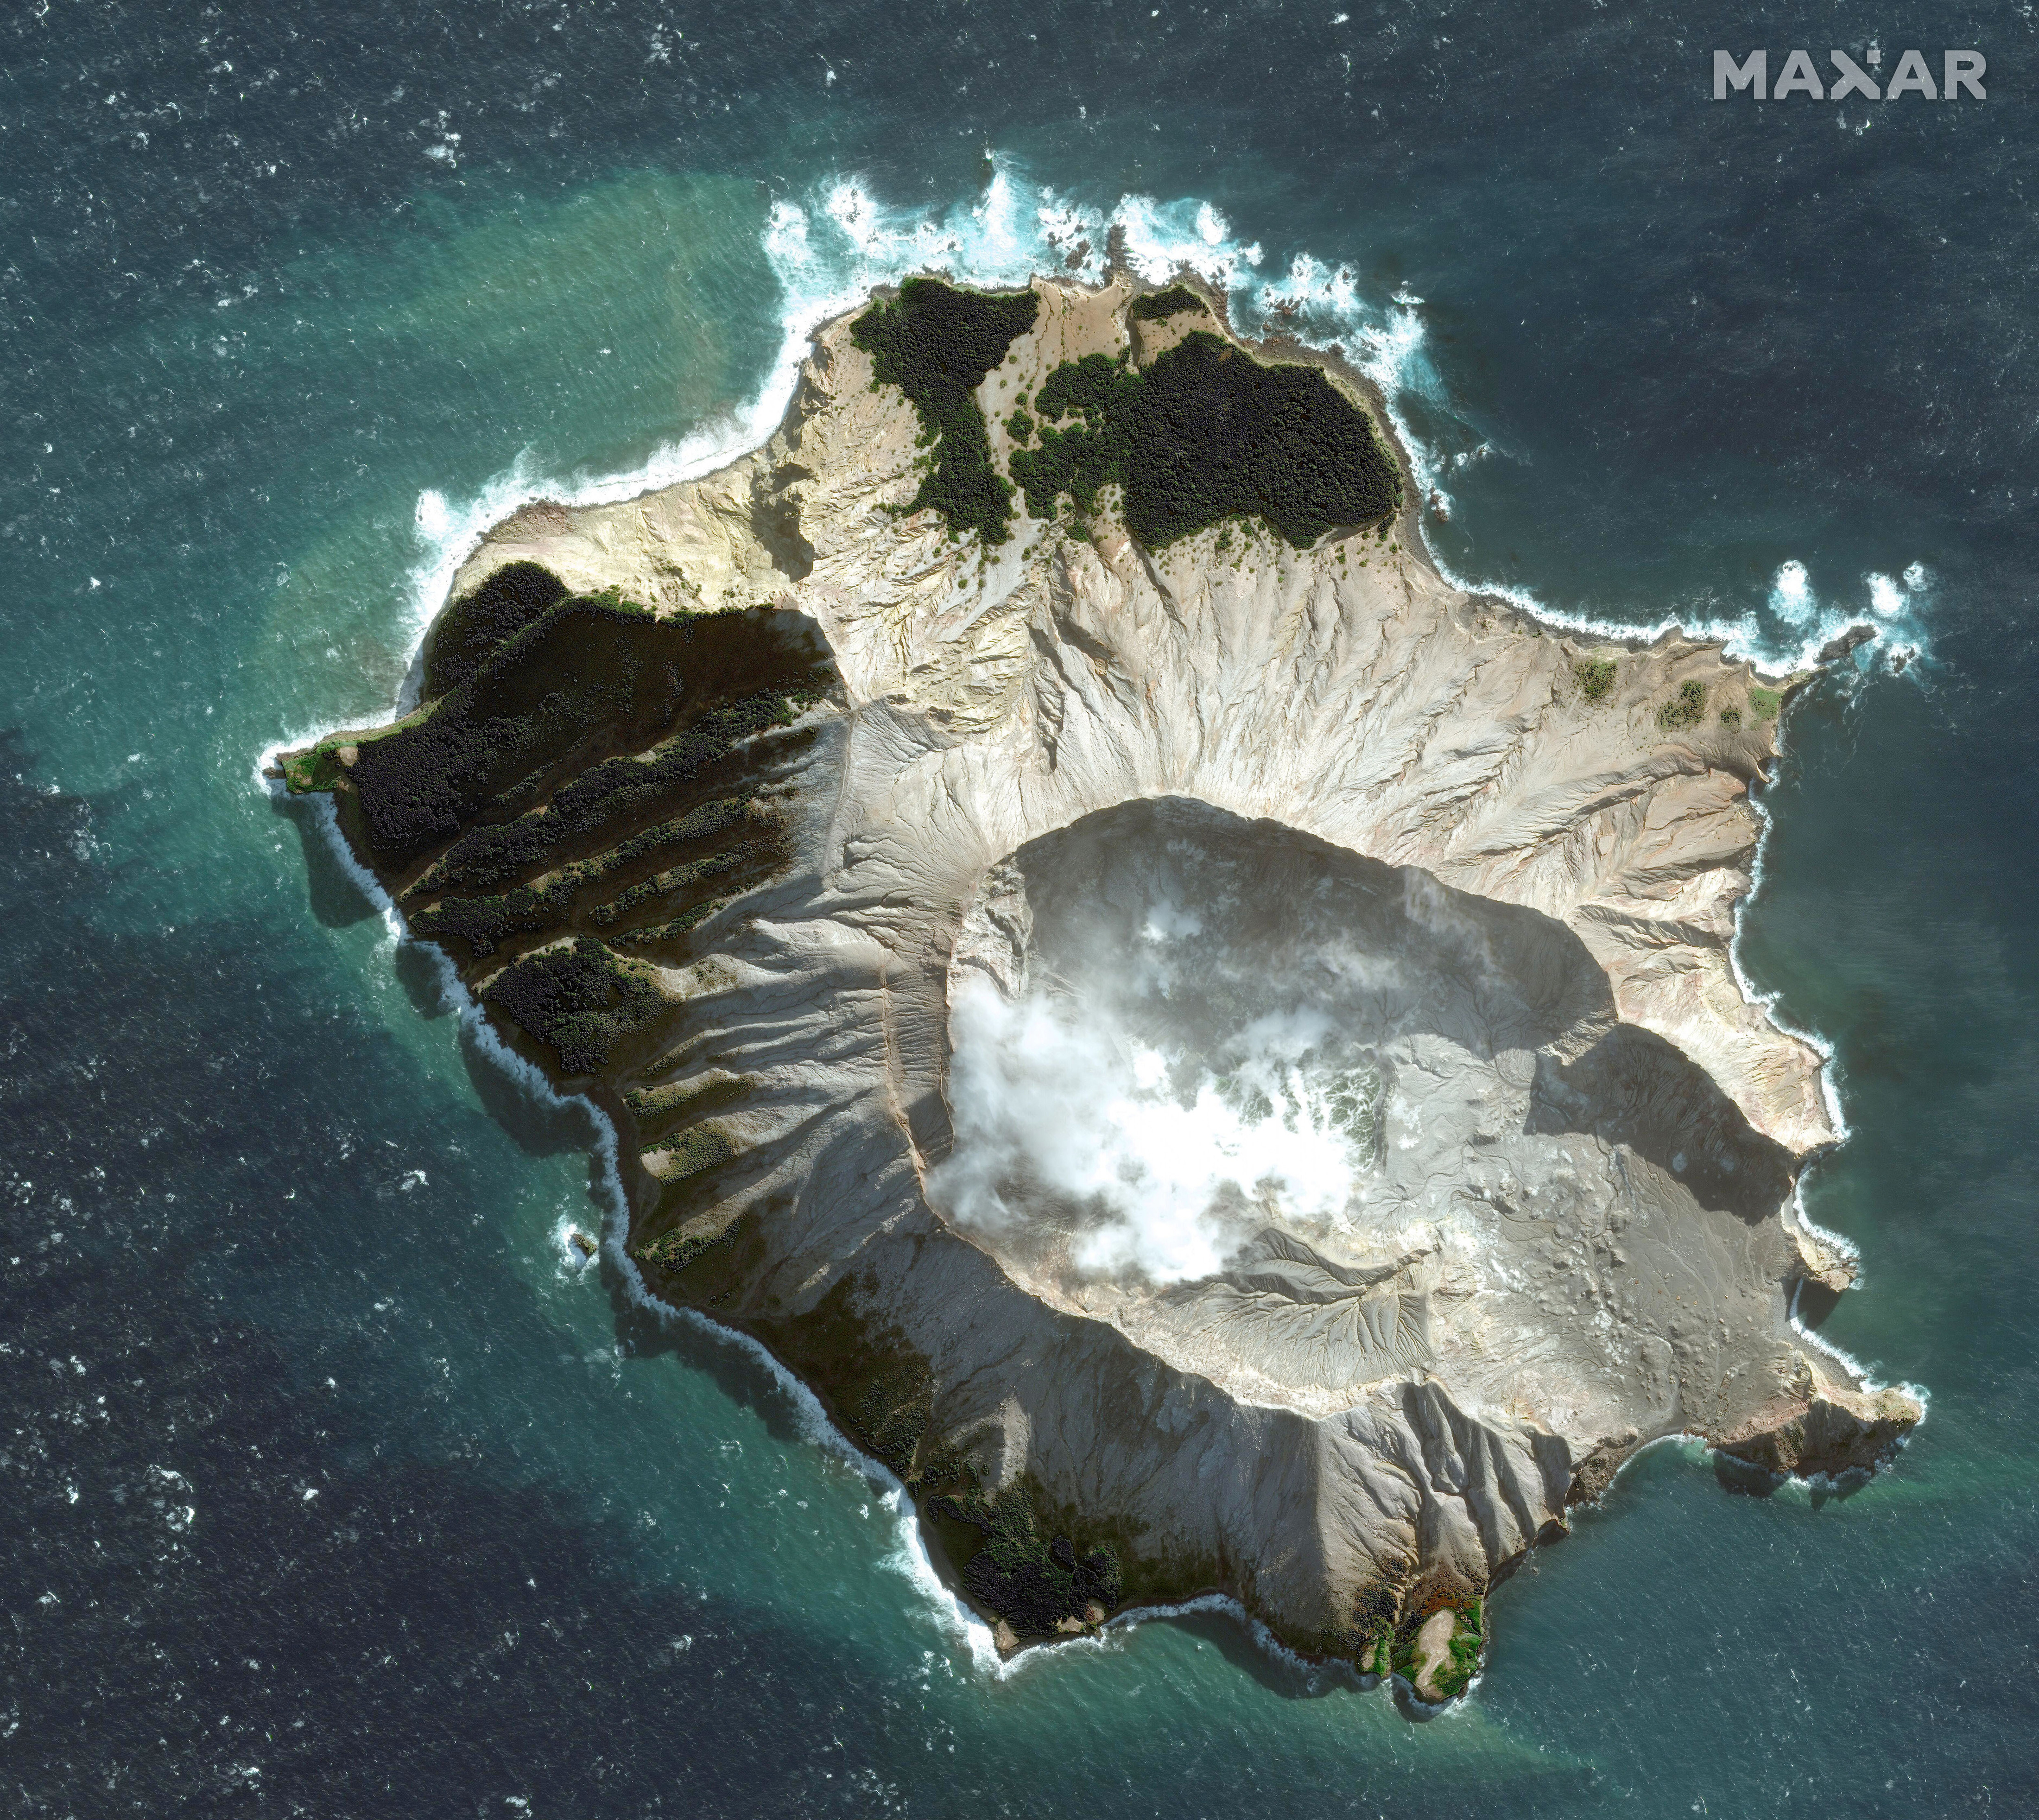 This May 12, 2019 satellite image provided by Maxar Technologies shows White Island in New Zealand before a volcano erupted on Monday, Dec. 9. (Satellite image ©2019 Maxar Technologies via AP)